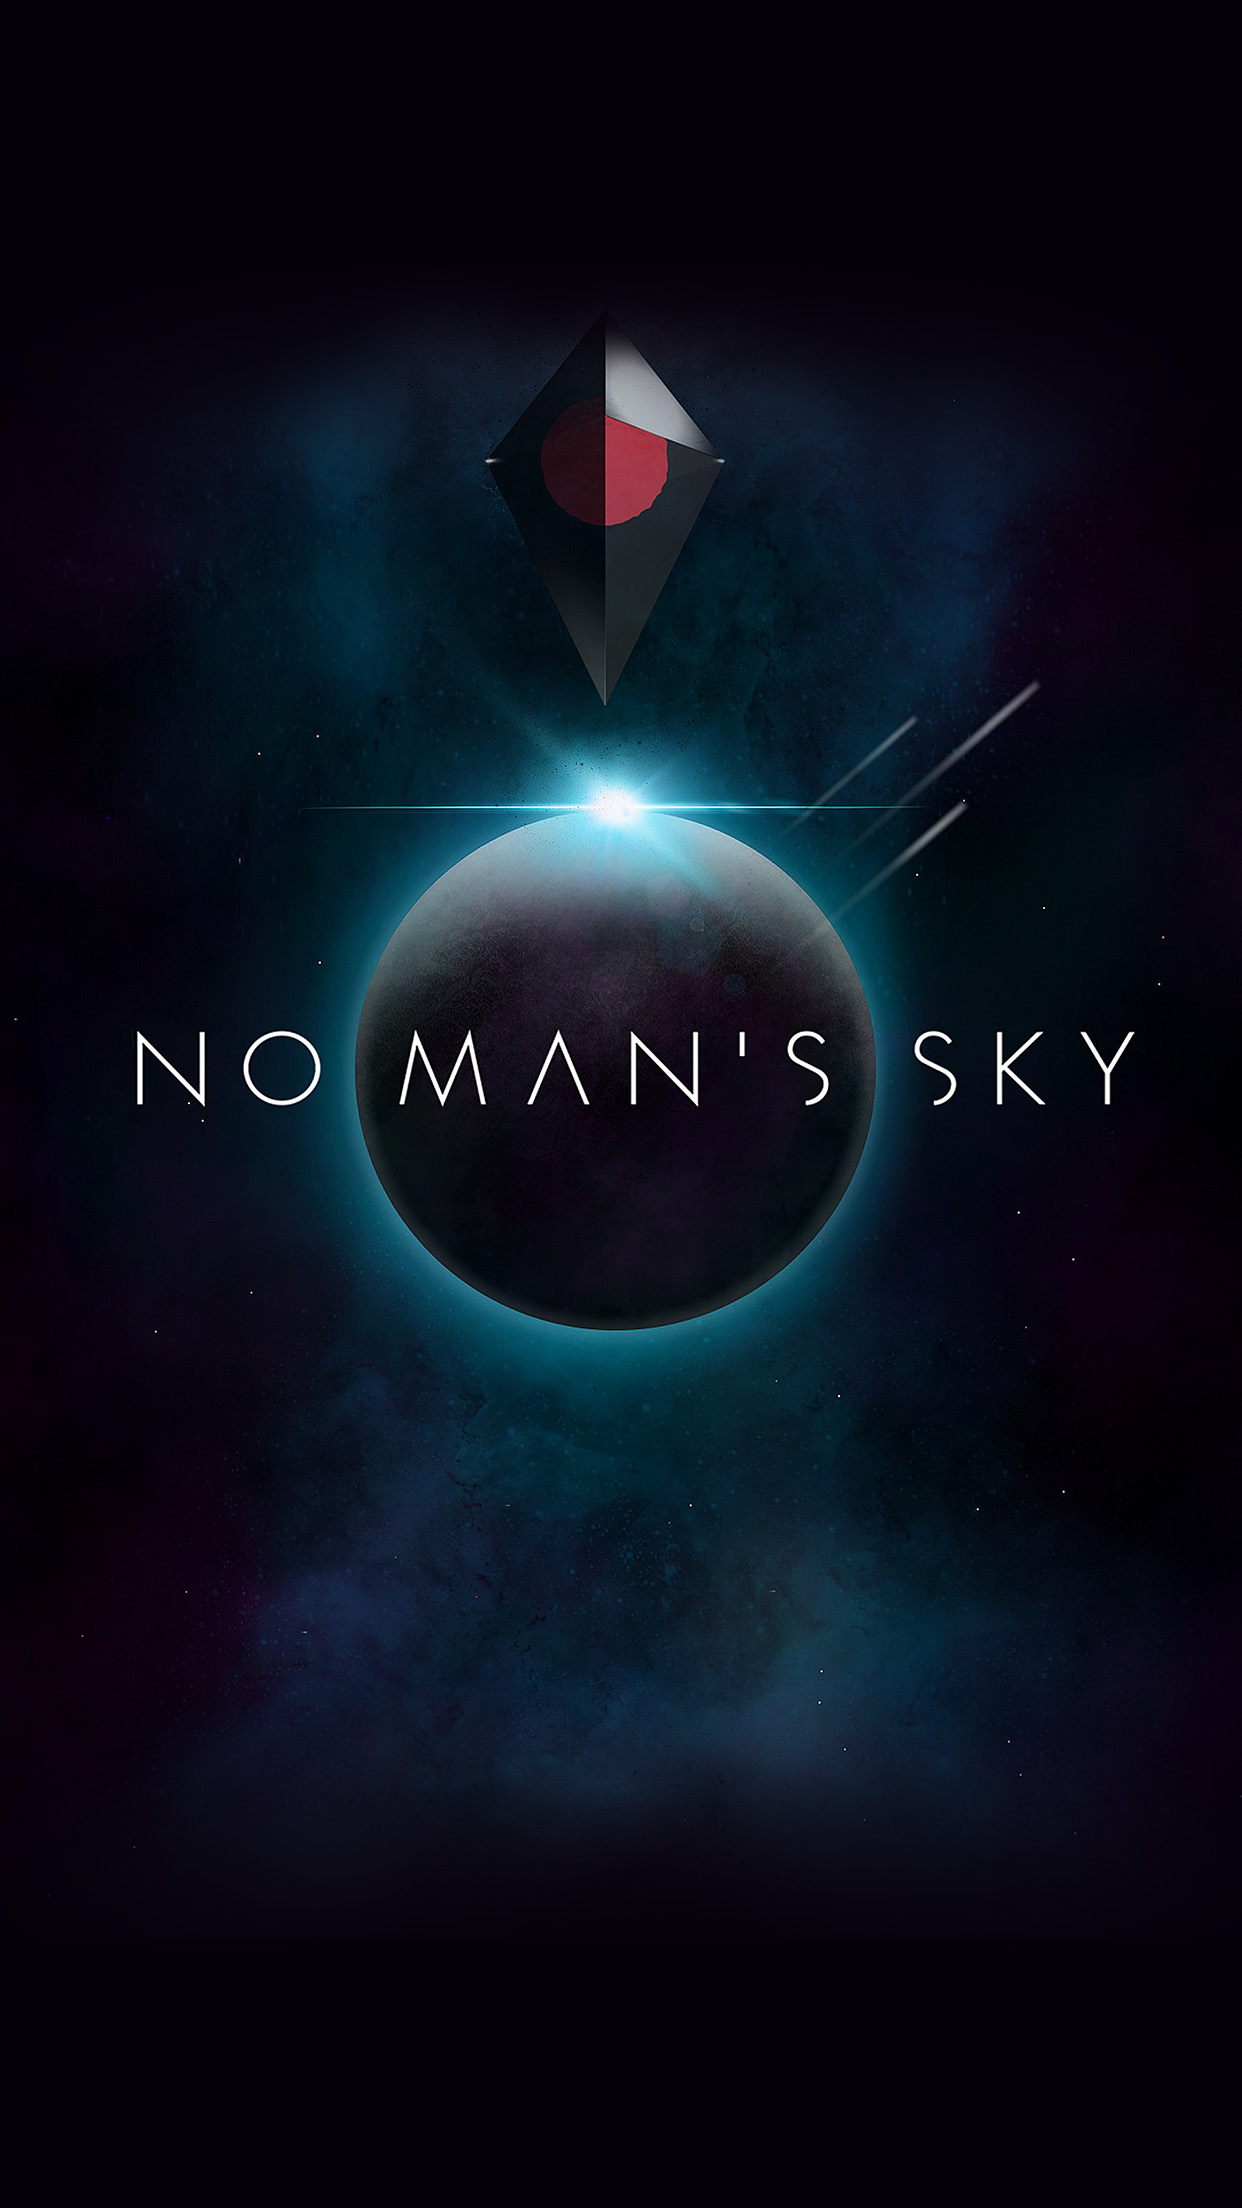 No Mans Sky Art Space Dark Illust Game Android Wallpaper Android